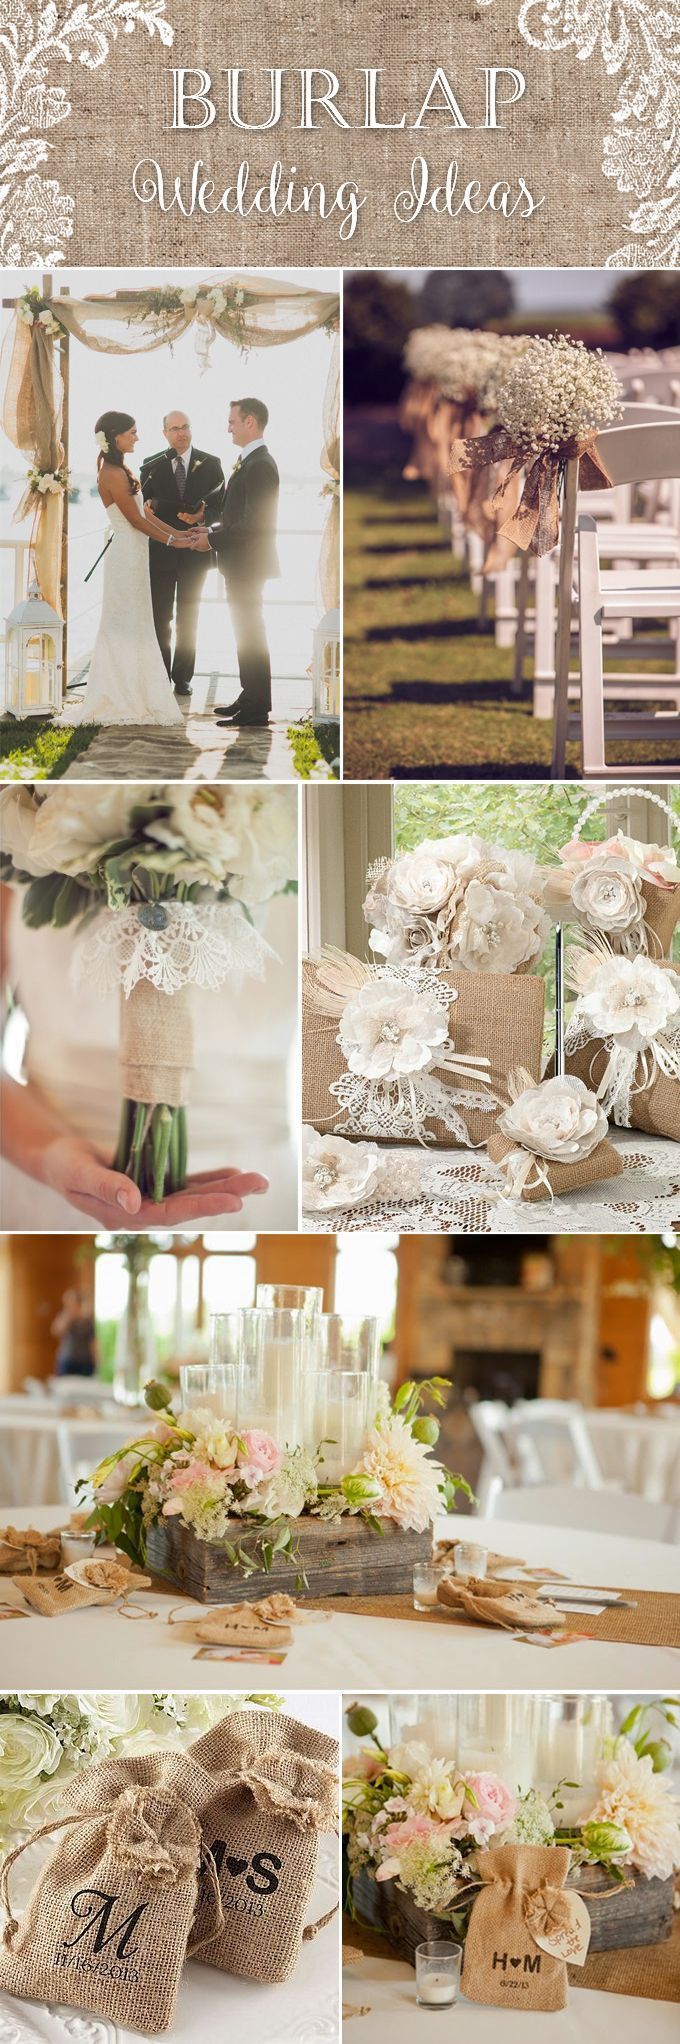 inspirational ideas for the perfect rustic wedding by